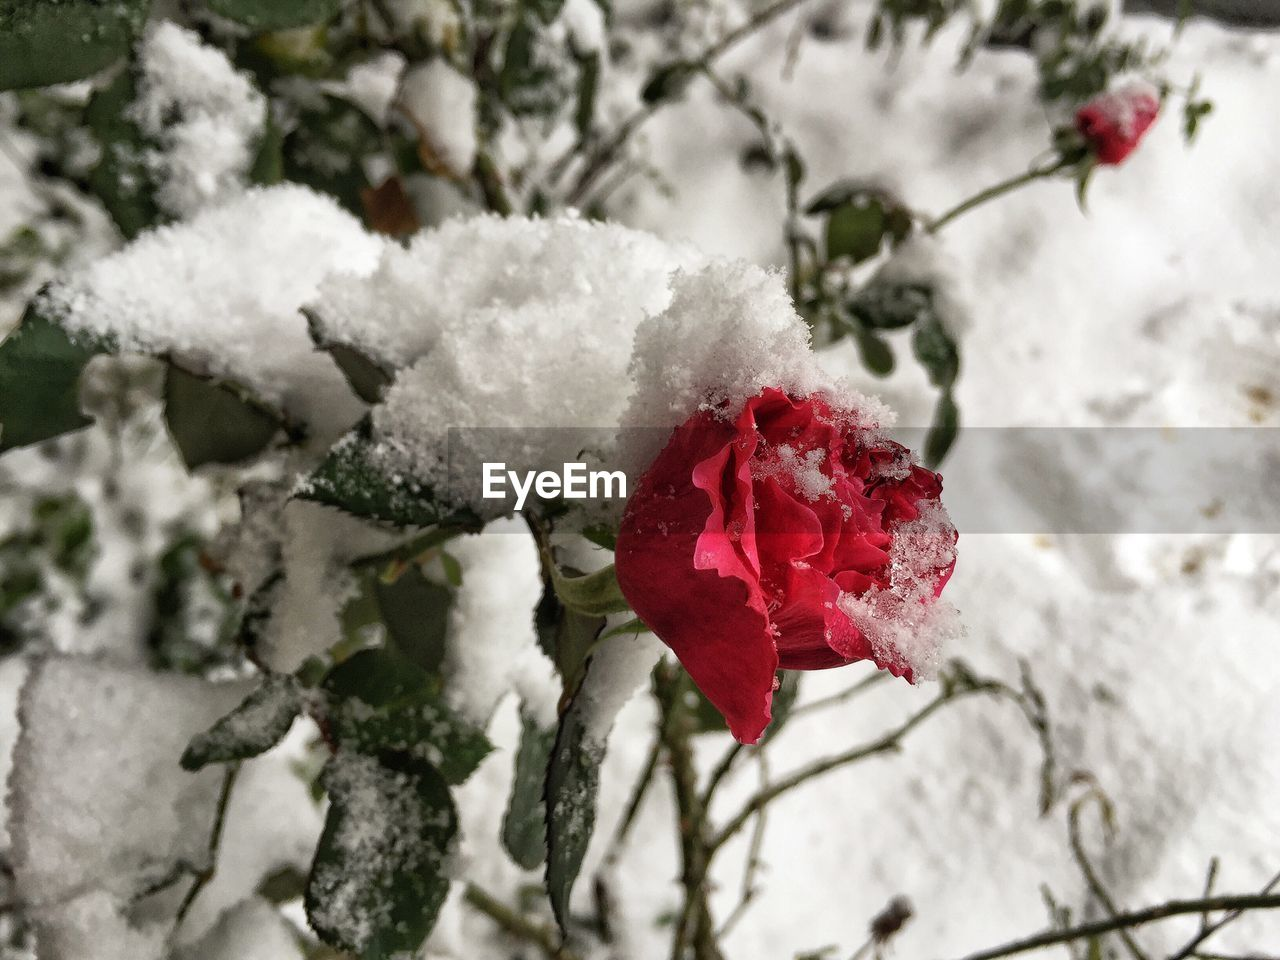 snow, cold temperature, winter, flower, nature, beauty in nature, red, white color, growth, weather, outdoors, plant, fragility, frozen, no people, close-up, freshness, day, blooming, flower head